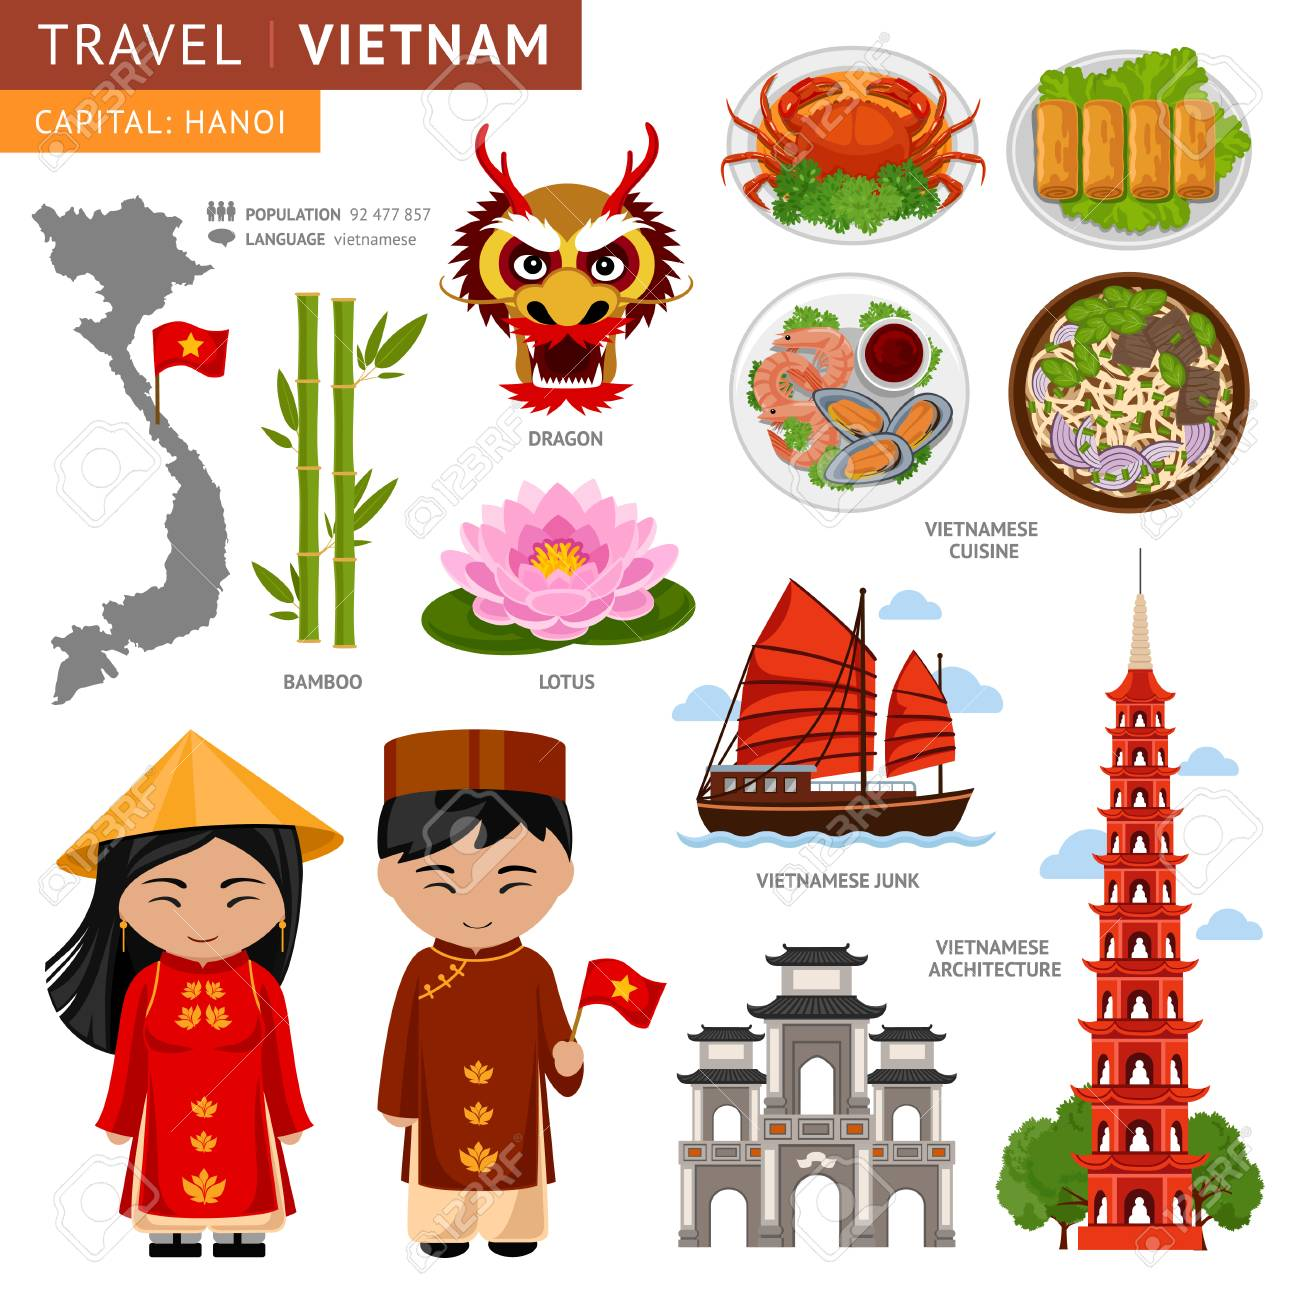 Travel To Vietnam Set Of Traditional Cultural Symbols A Collection Royalty Free Cliparts Vectors And Stock Illustration Image 105136887